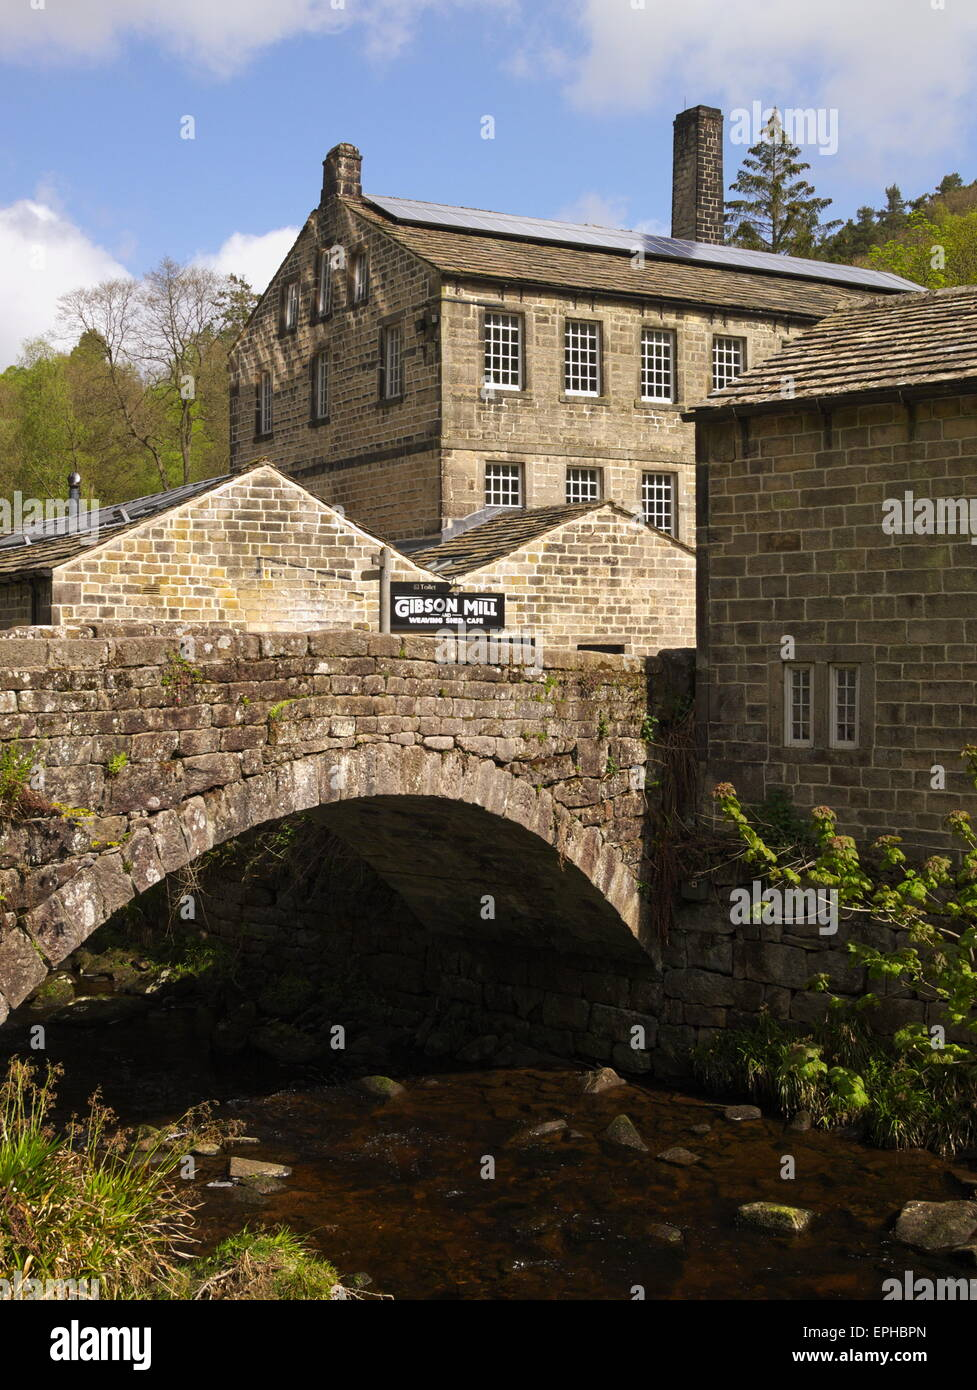 The 'Off Grid' Gibson Mill at Hardcastle Crags. - Stock Image